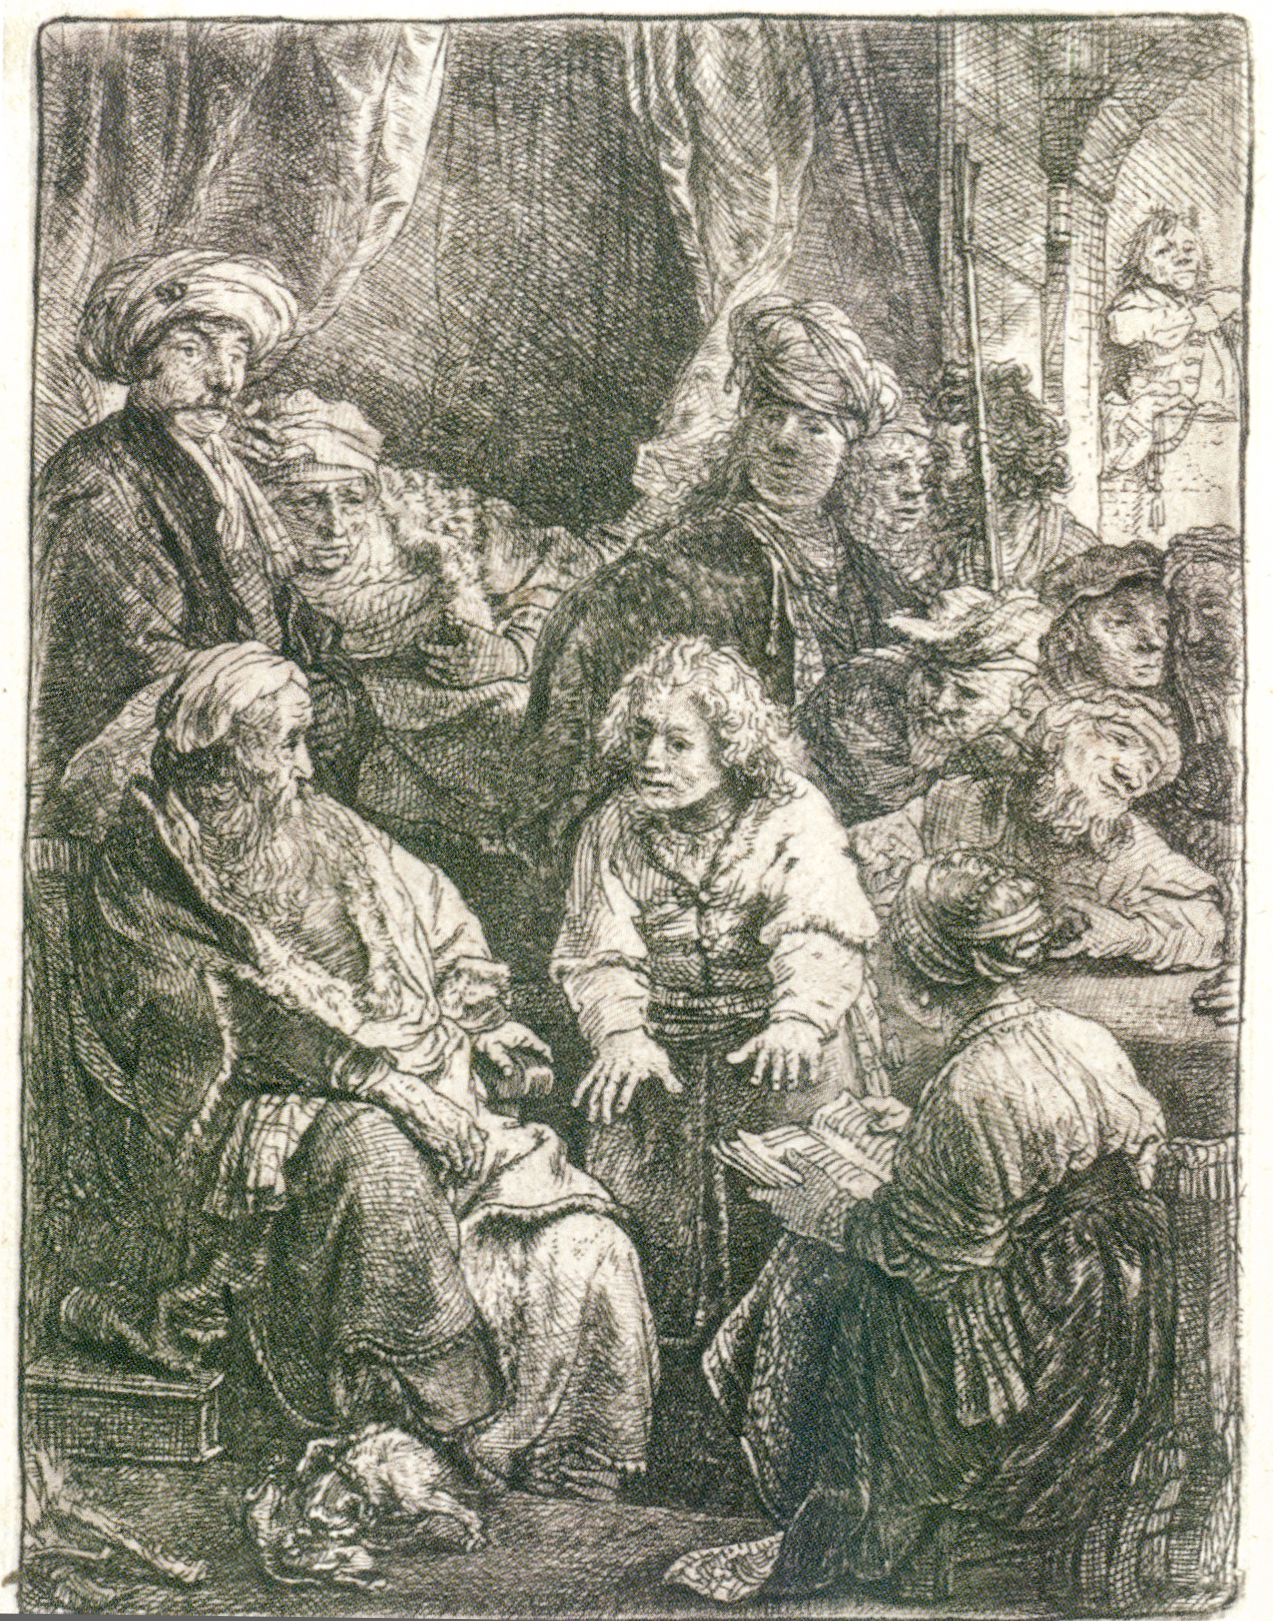 https://upload.wikimedia.org/wikipedia/commons/a/a7/Rembrandt_-_Joseph_Telling_his_Dreams.jpg